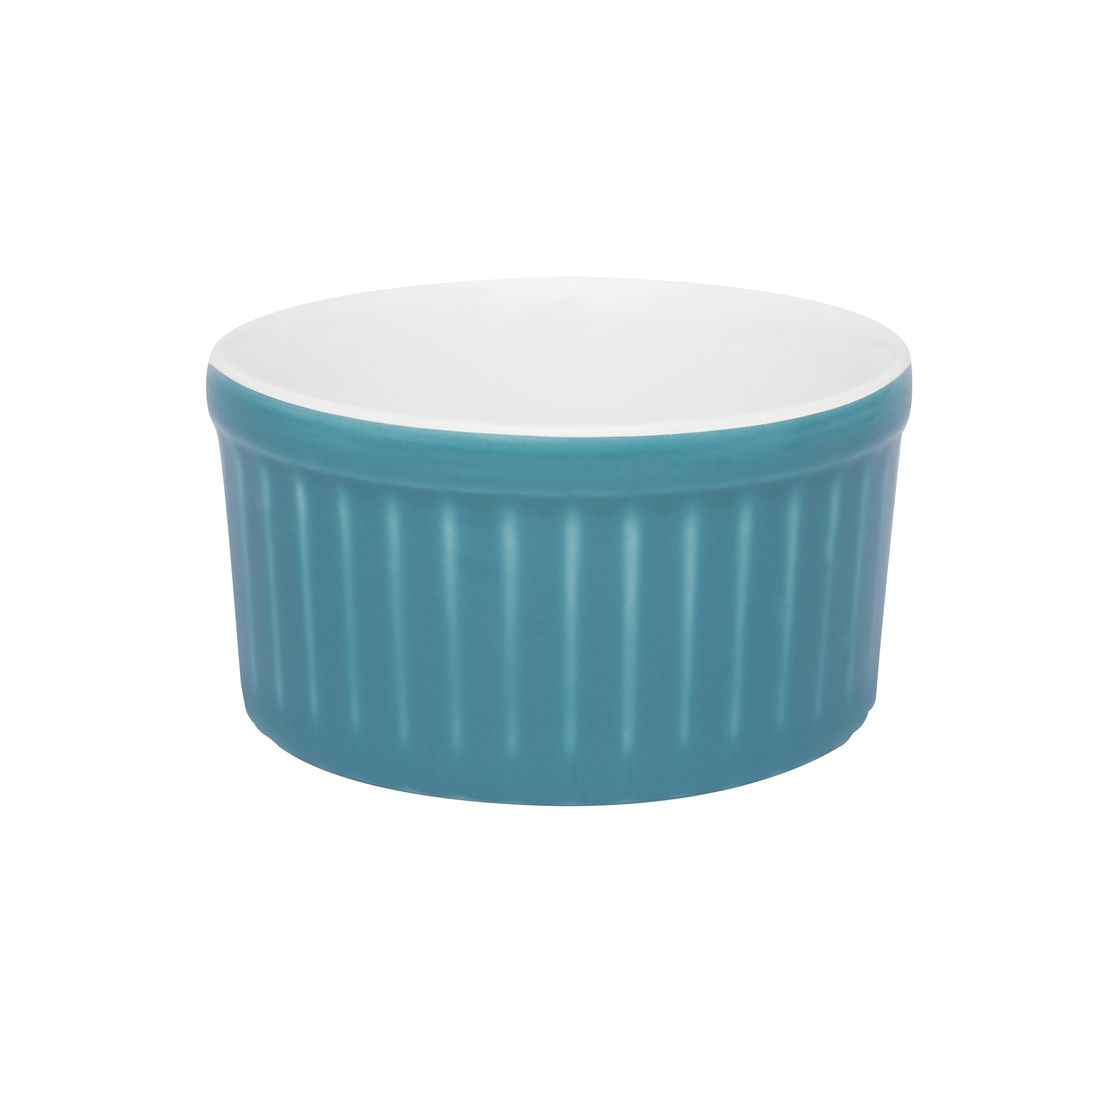 Tigela Ramequin 10X5Cm 180Ml - Branco/Azul - Oxford Cookware